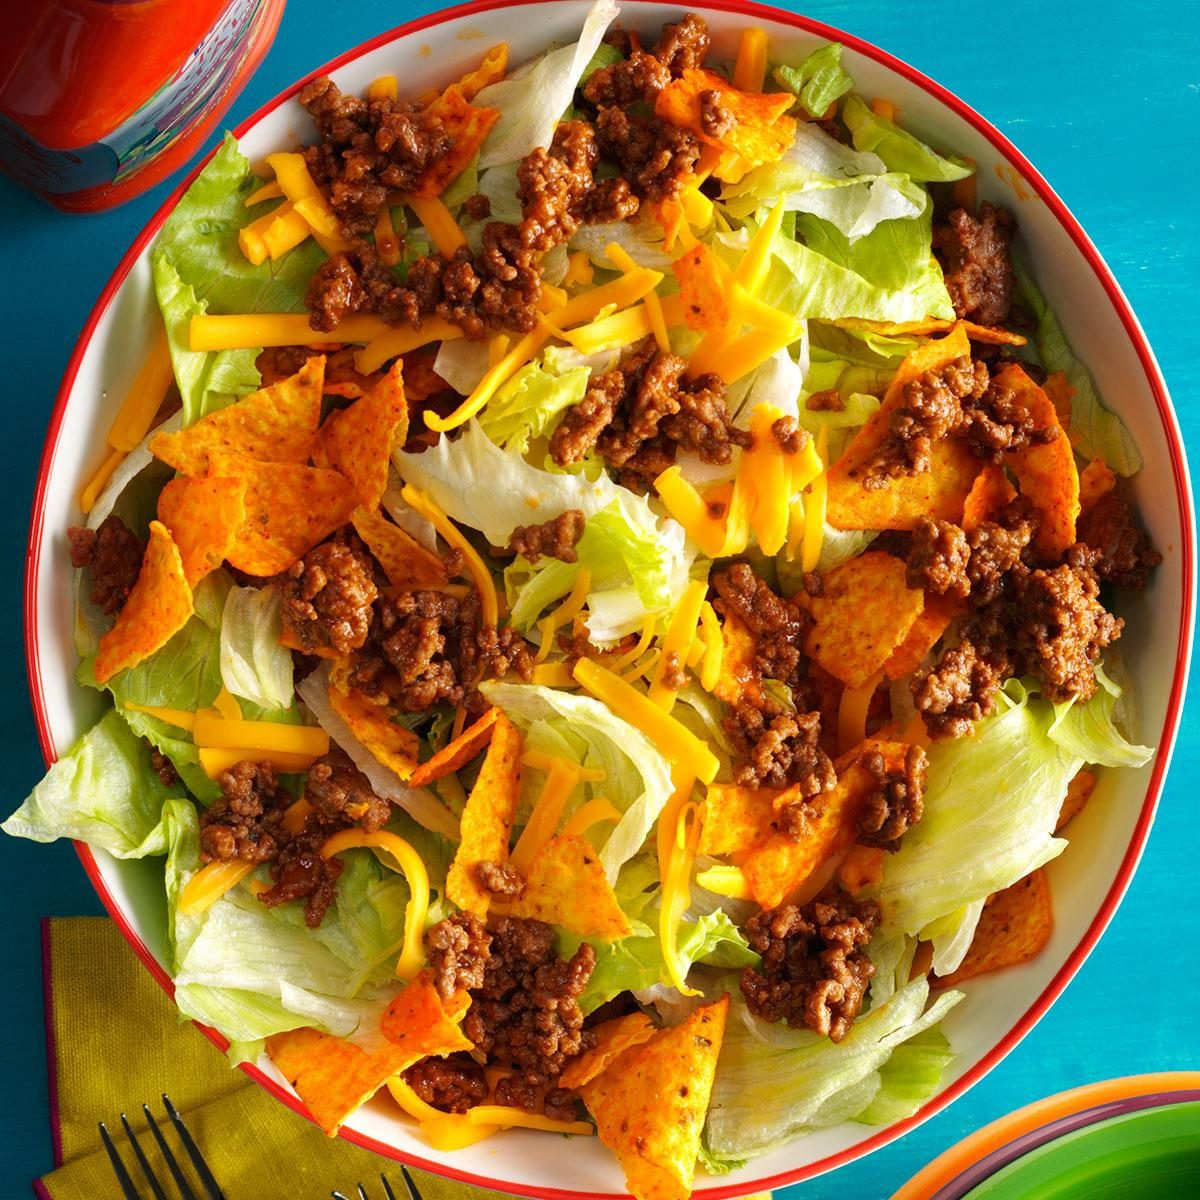 8 More Delicious And Easy Ground Beef Dinner Ideas: Easy Ground Beef Taco Salad Recipe